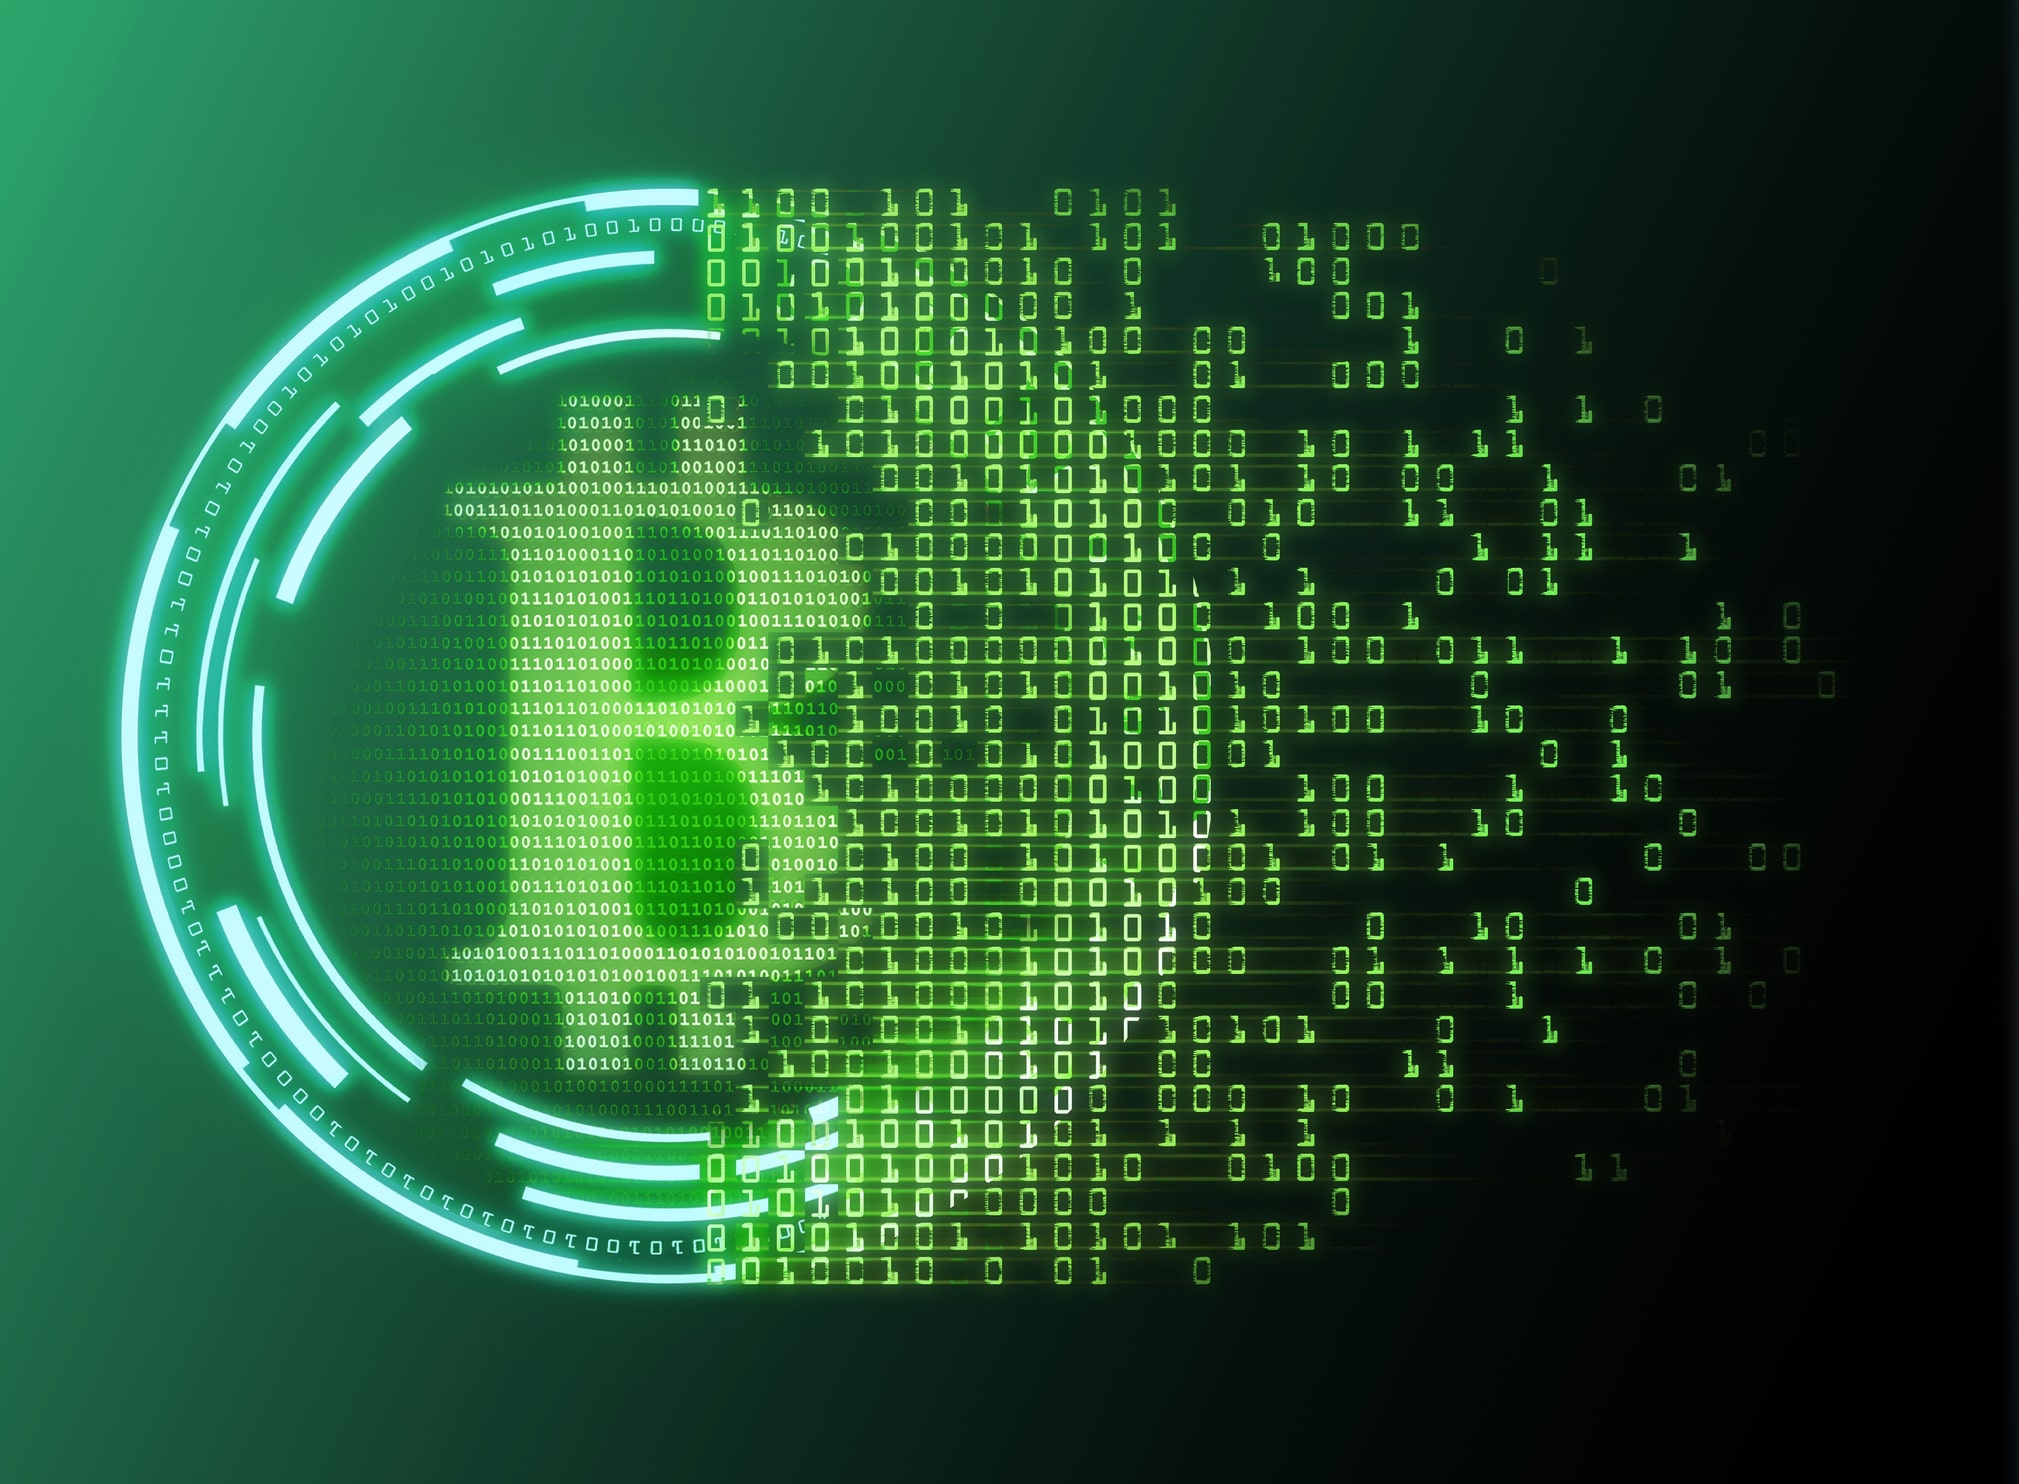 Bitcoin logo dissolving into binary code.